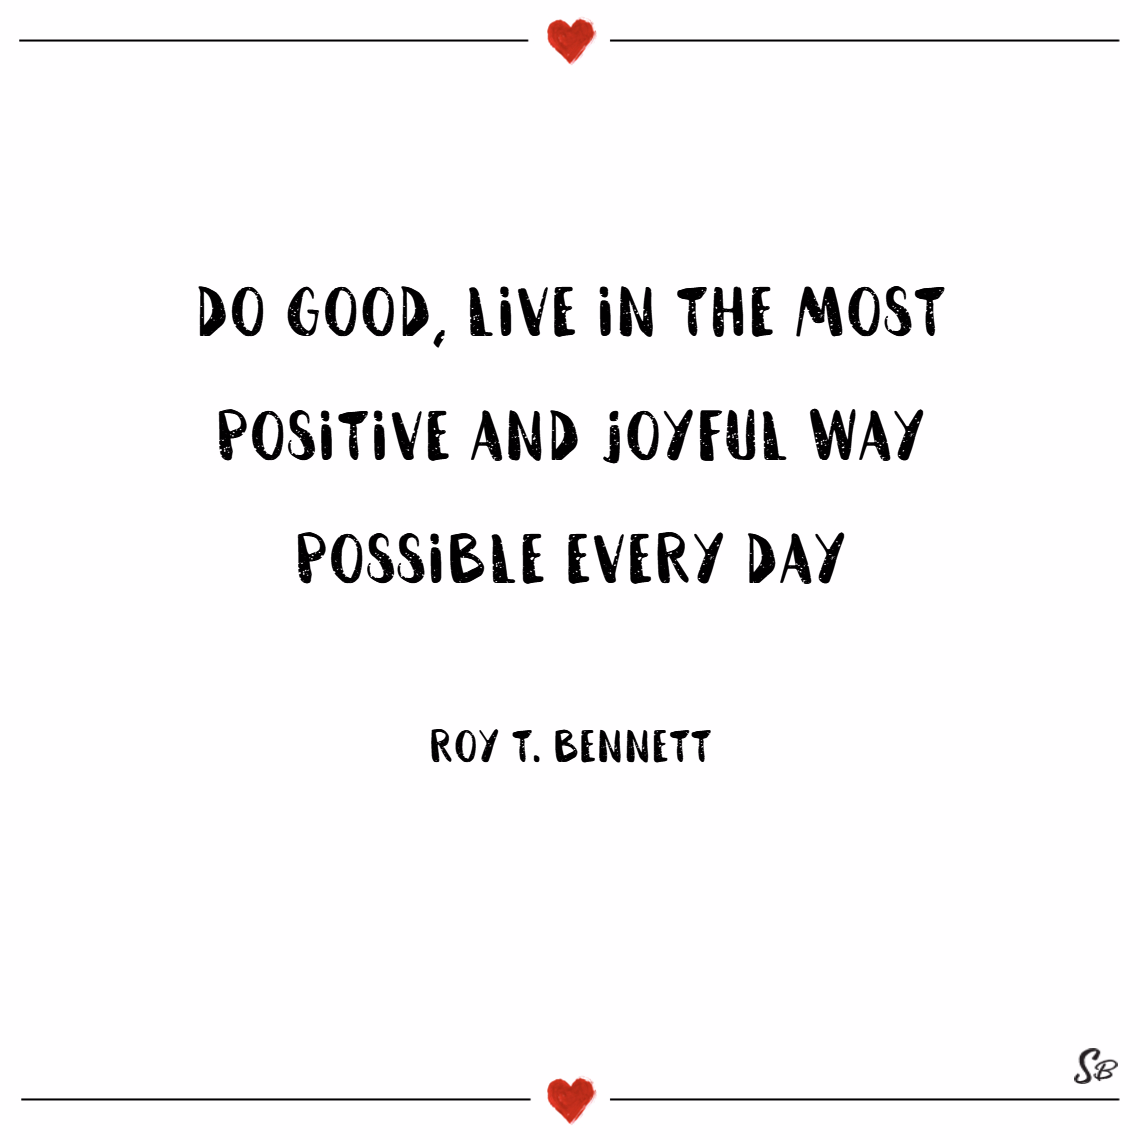 Do good, live in the most positive and joyful way possible every day. – roy t. bennett